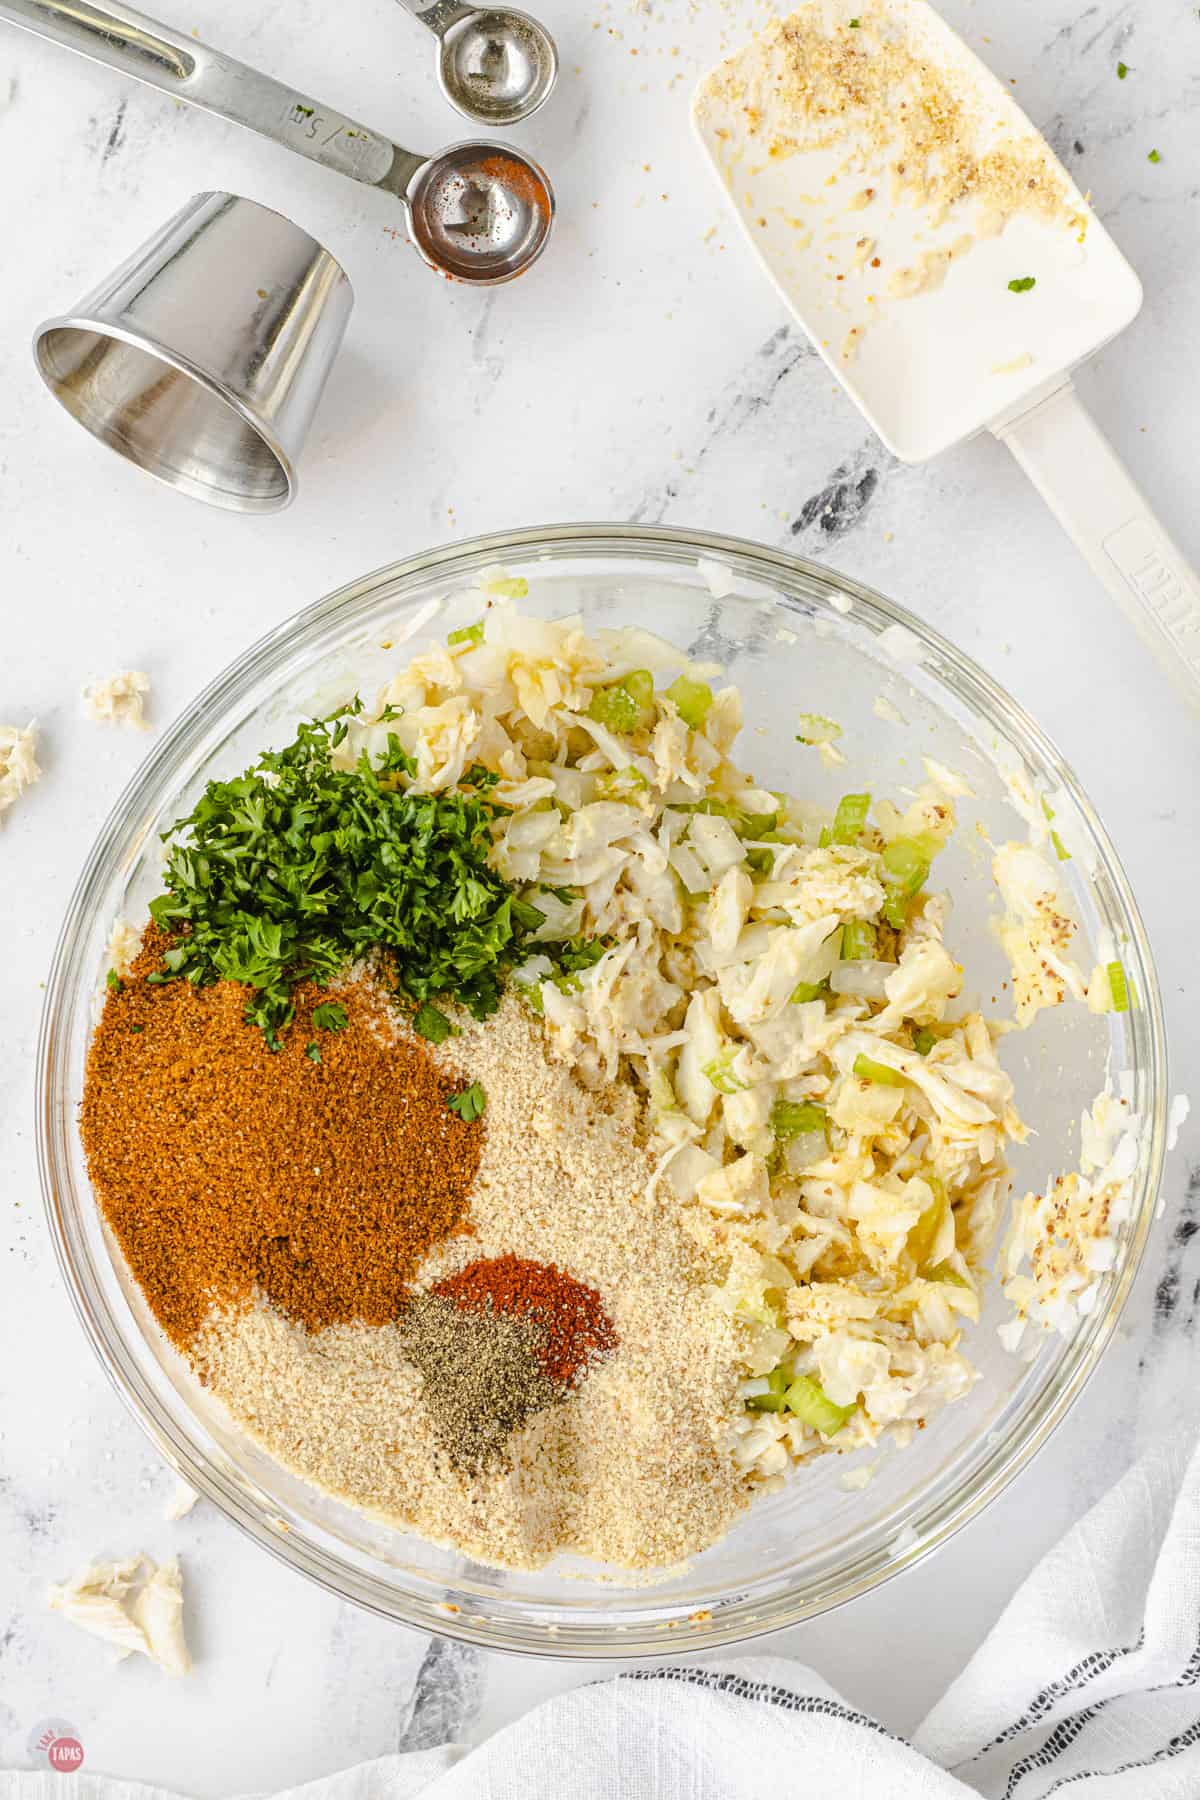 spices and crab in a bowl